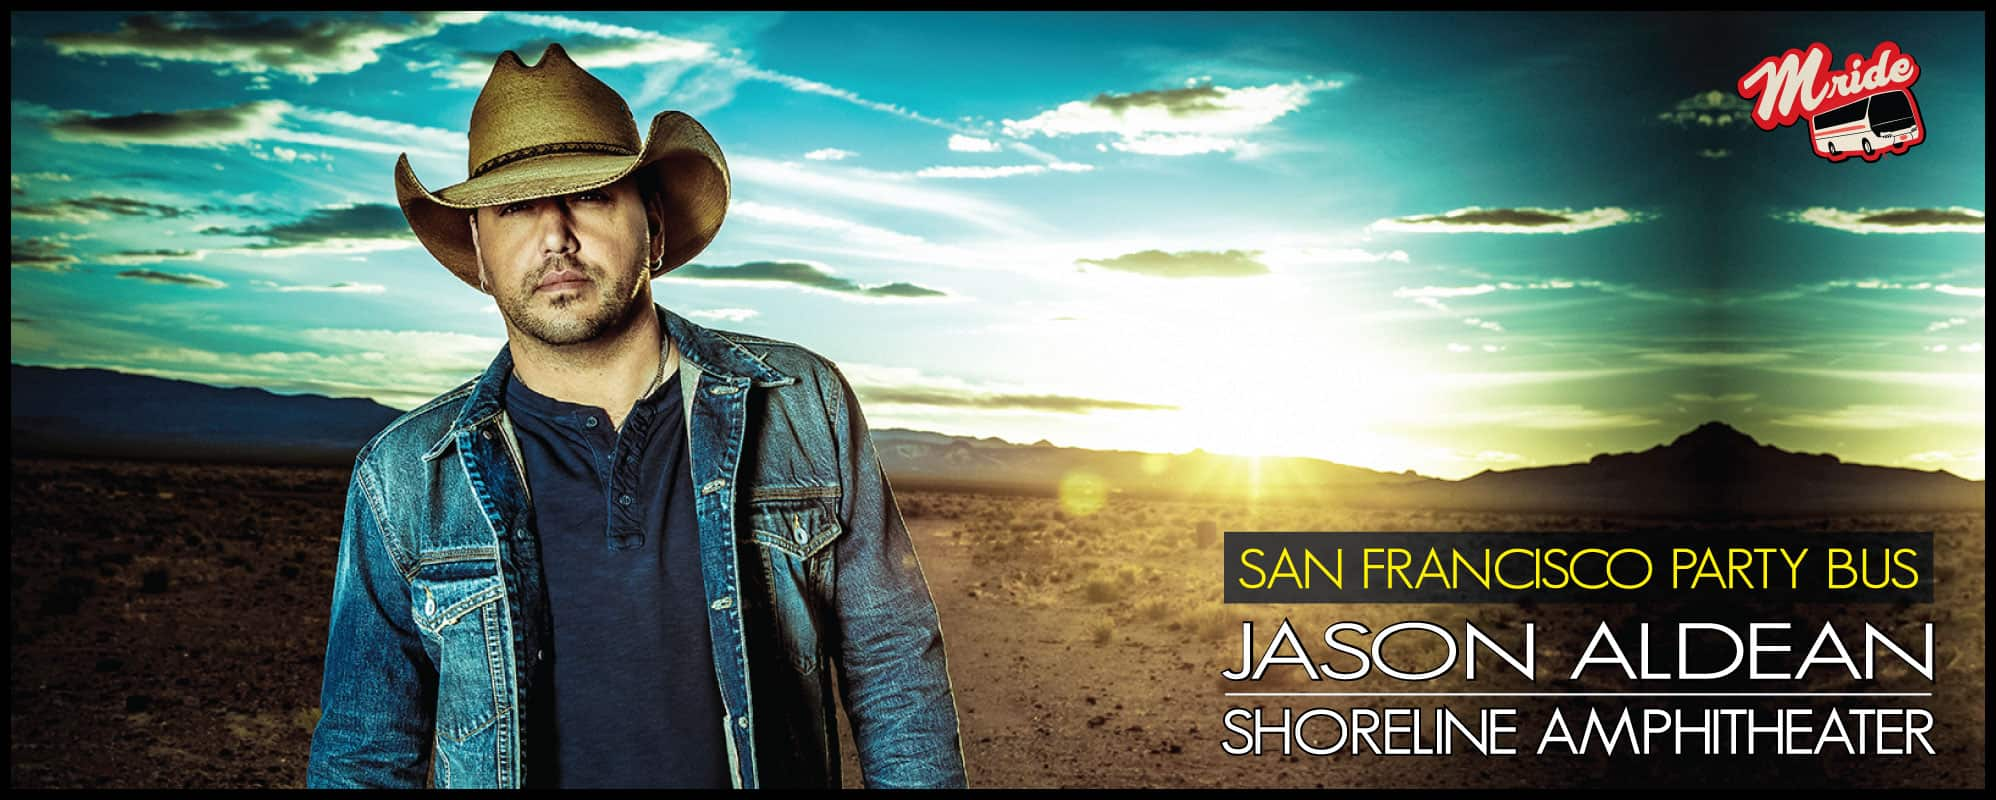 Jason Aldean Party Bus (Shoreline Amphitheater)